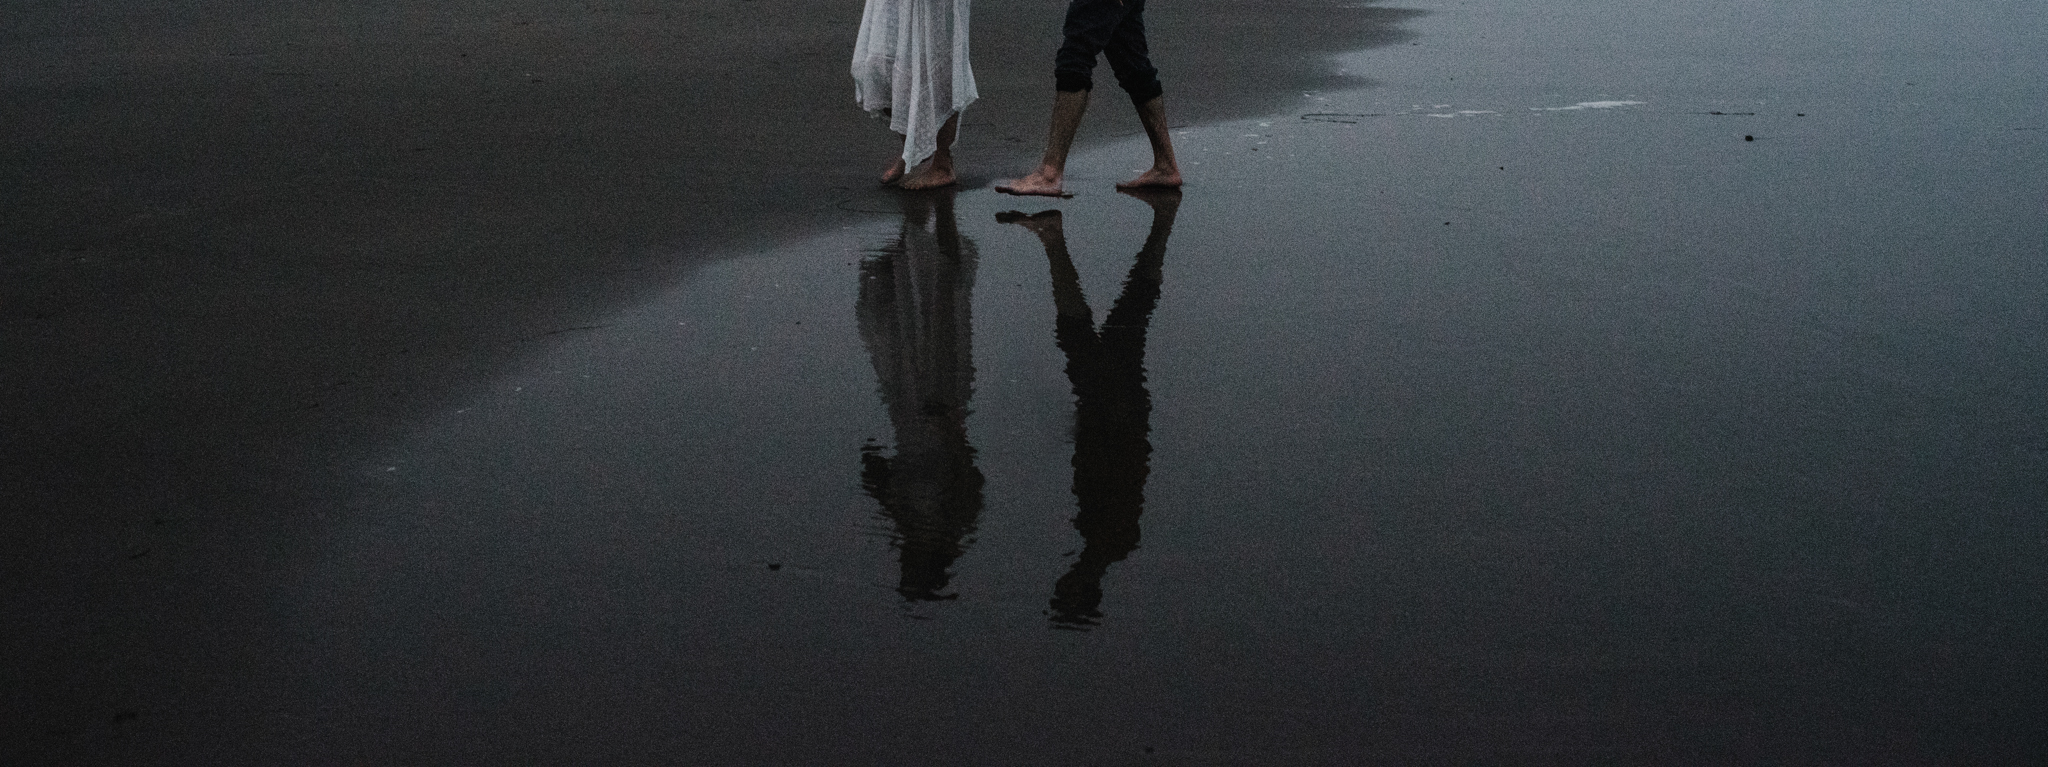 Ruthie and Anthony - Foggy Oregon Coast Couple Adventure Session - White Sails Photography Creative_59.JPG